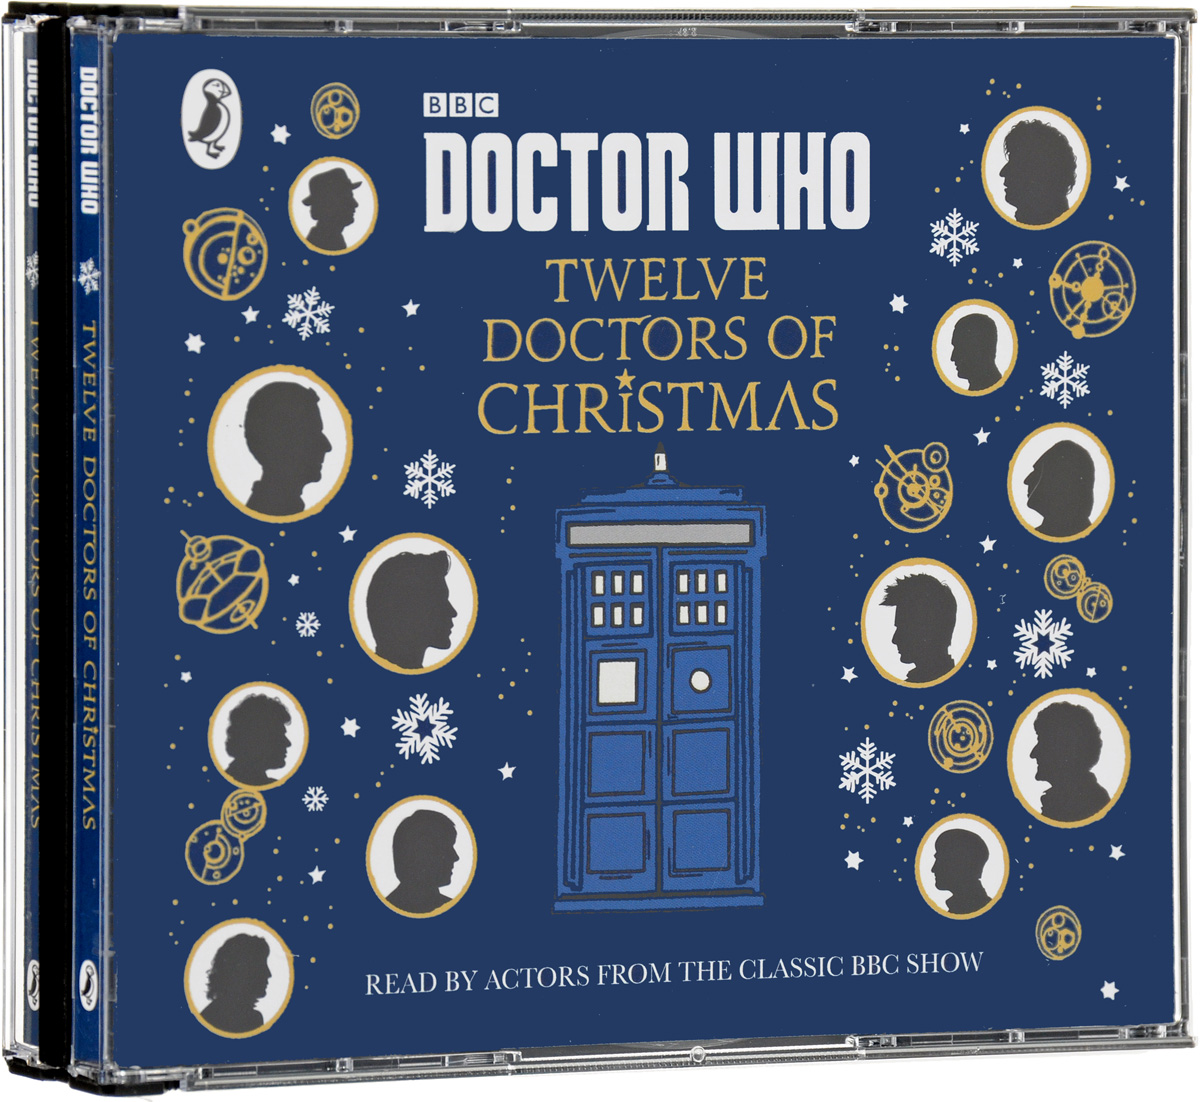 Doctor Who: Twelve Doctors of Christmas (аудиокнига CD) футболка рингер printio доктор кто doctor who